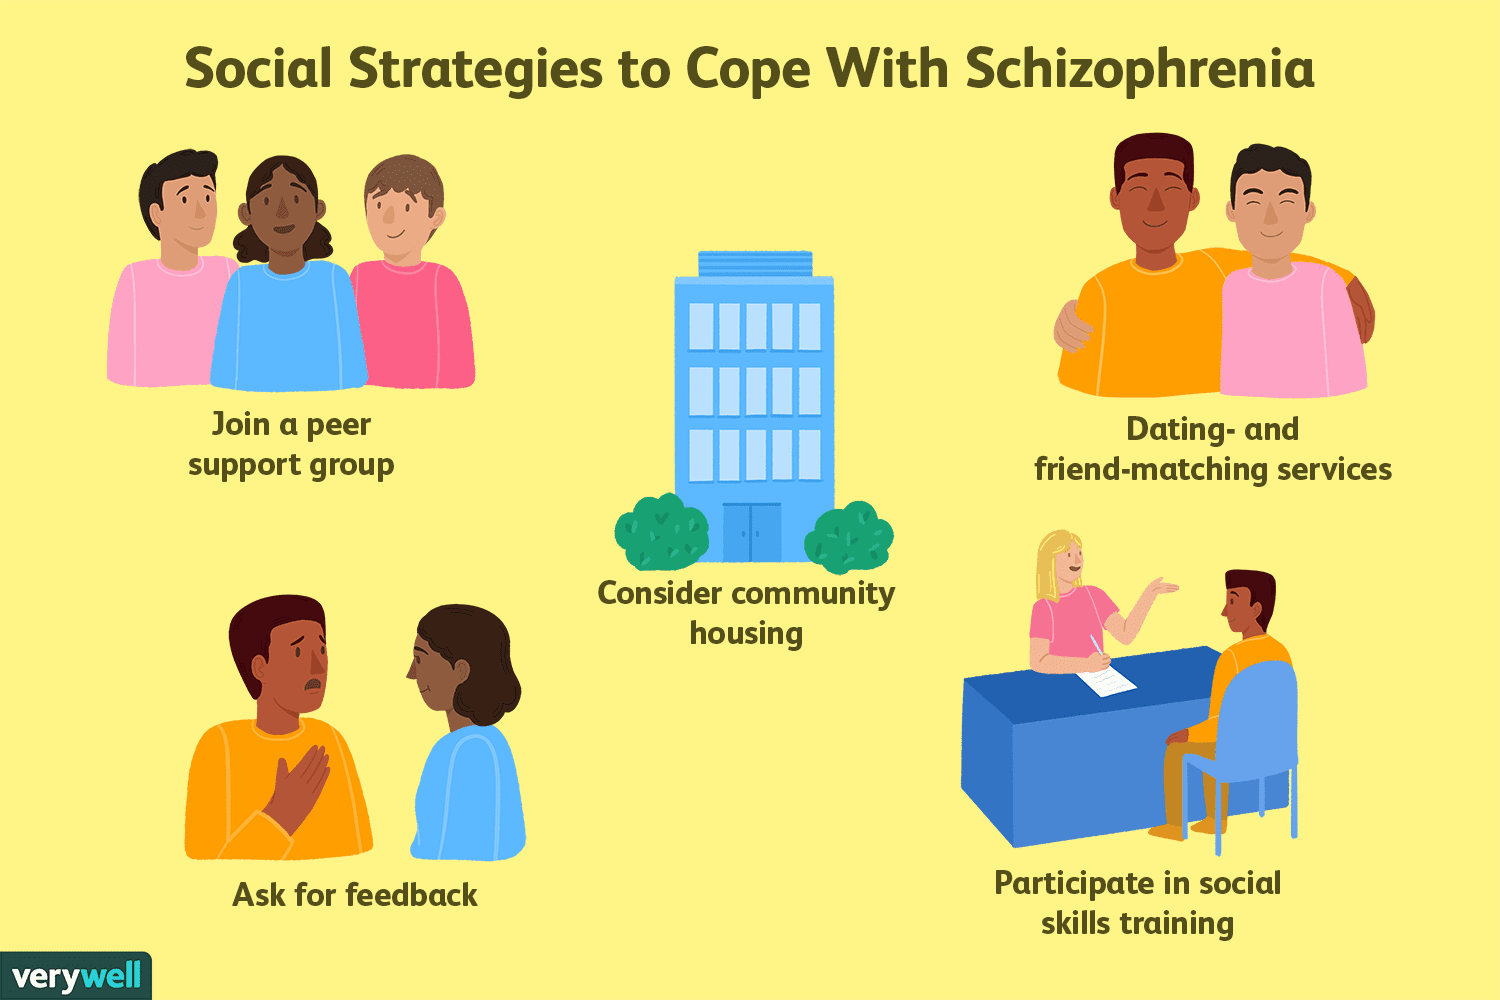 Schizophrenia Coping Supporting And Living Well